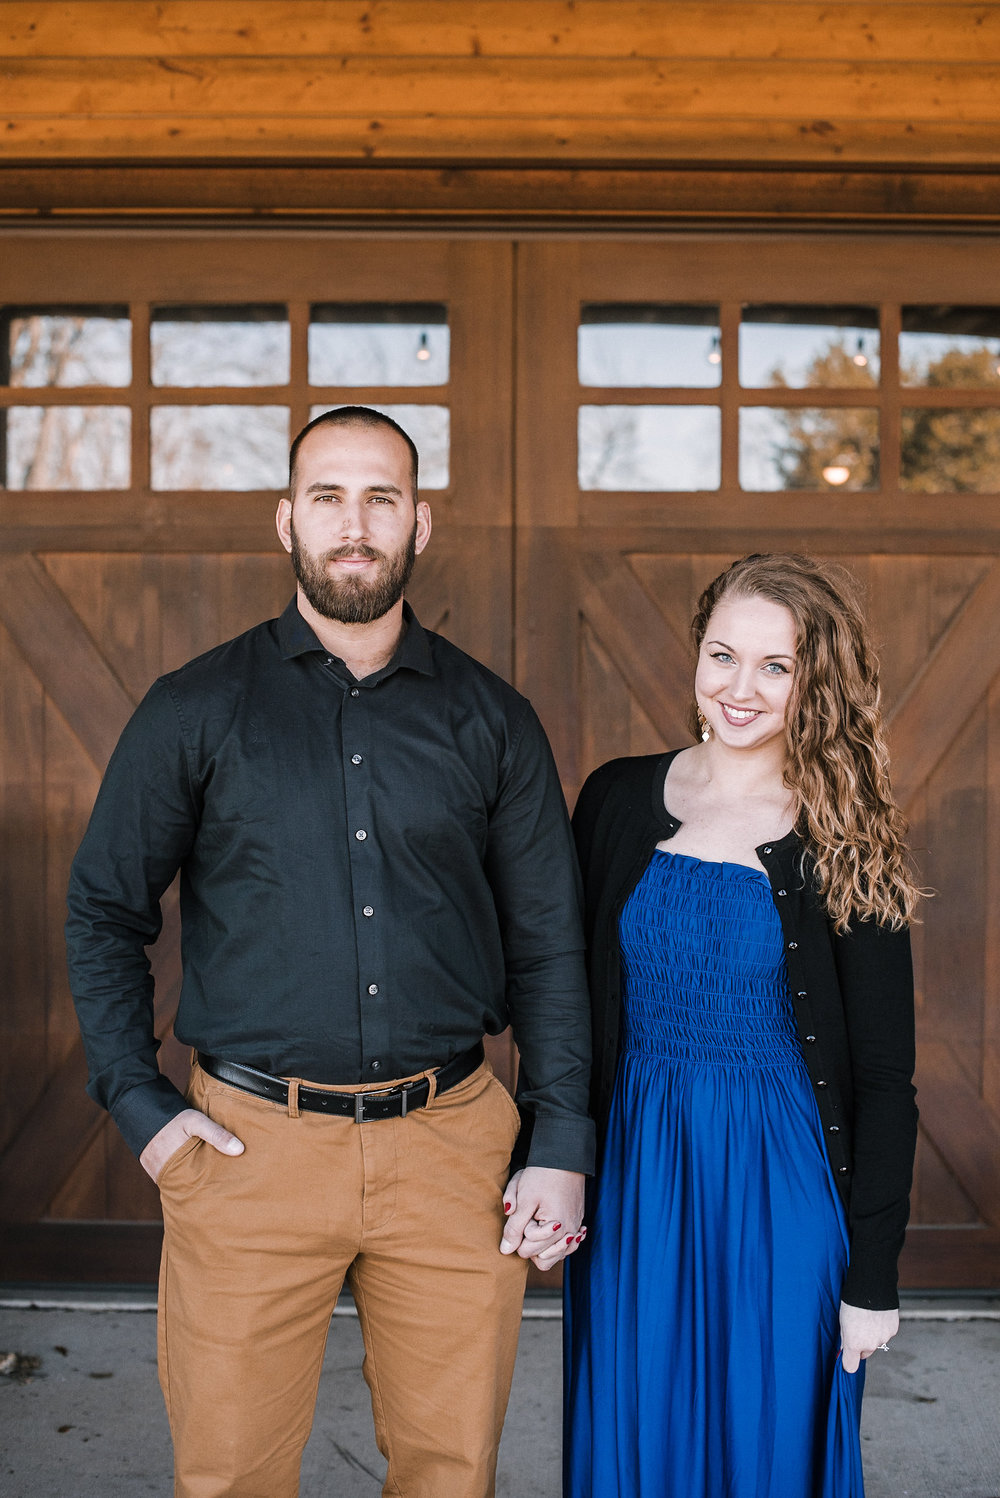 Man and woman holding hands in front of barn door